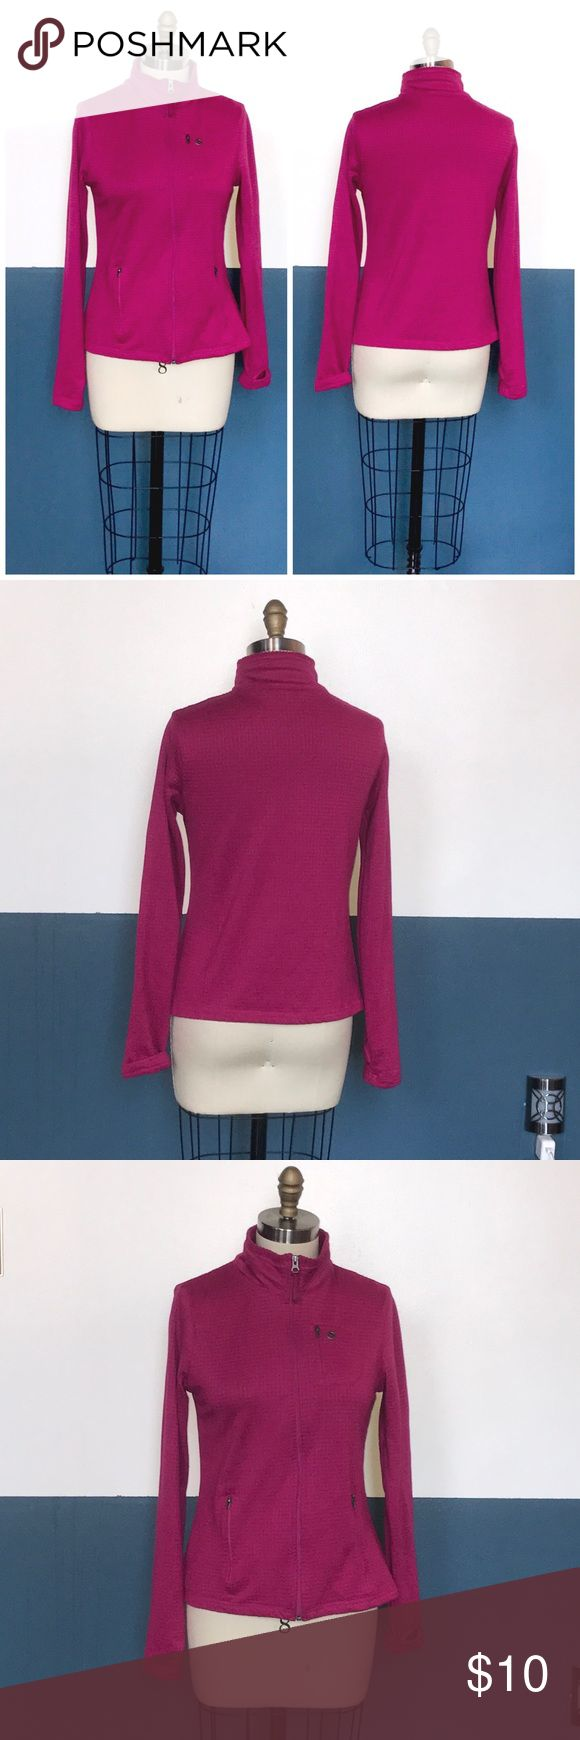 """fleece zip out athletic running track jacket Features thumb holes and a place to keep your iPad nano / mini!   Size M 8 10  Shown on my size 8 mannequin and it is a good fit.   Actual measurements:  Bust: 36-40""""  Bottom hem: 40-46""""  Length: 24""""  Sleeve length: 27.5"""" (including thumb holes!"""" Danskin Now Jackets & Coats"""